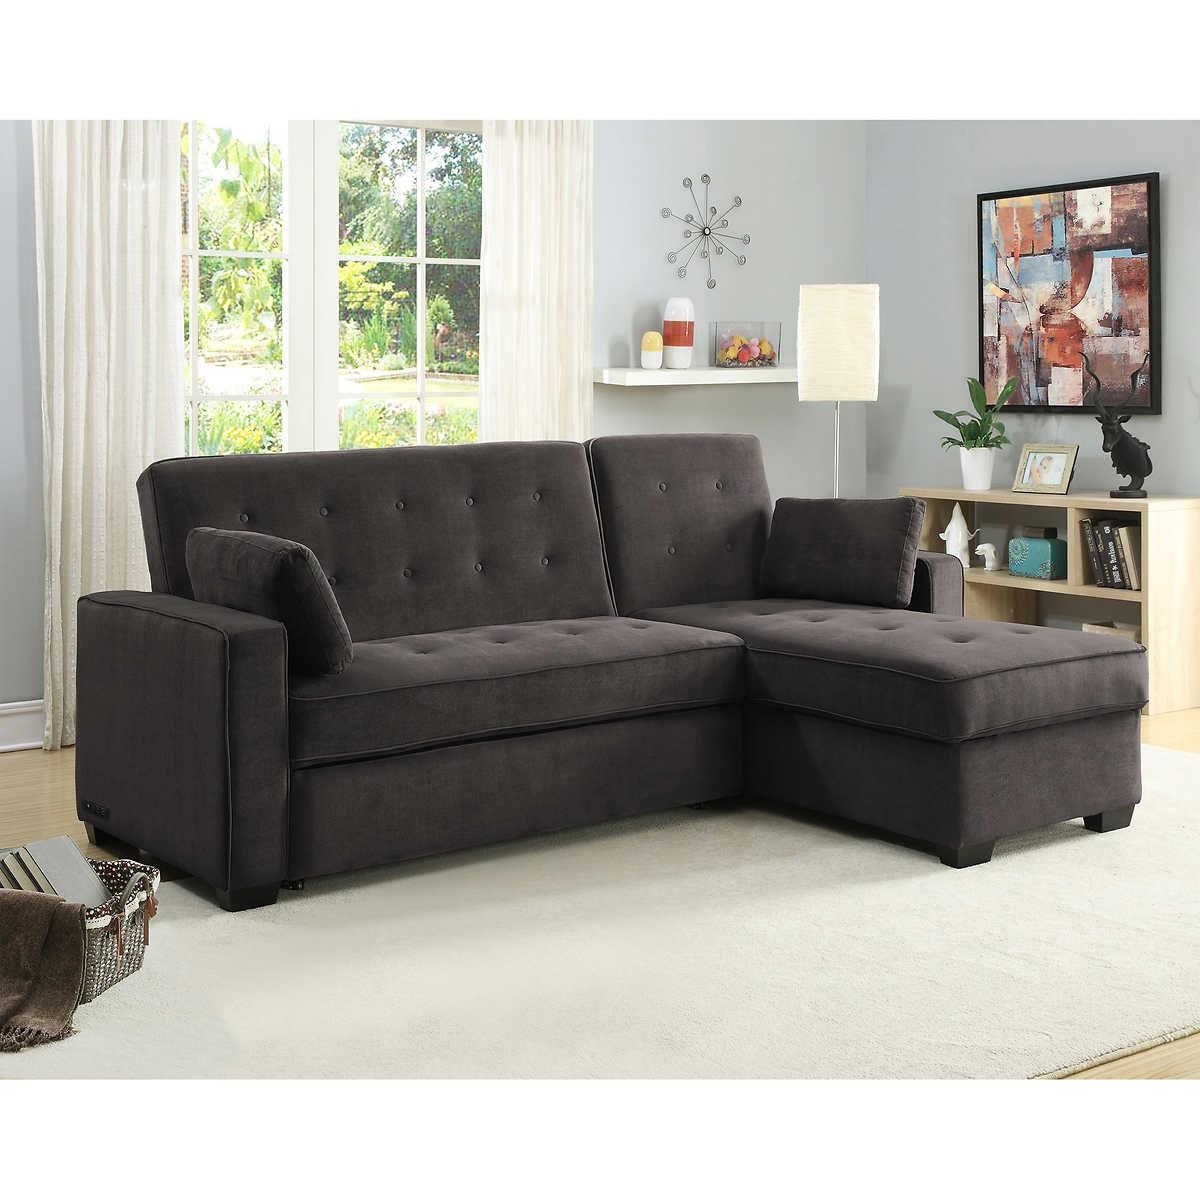 Berkline recliner sofa berkline reclining sofa hereo thesofa for Berkline chaise recliner